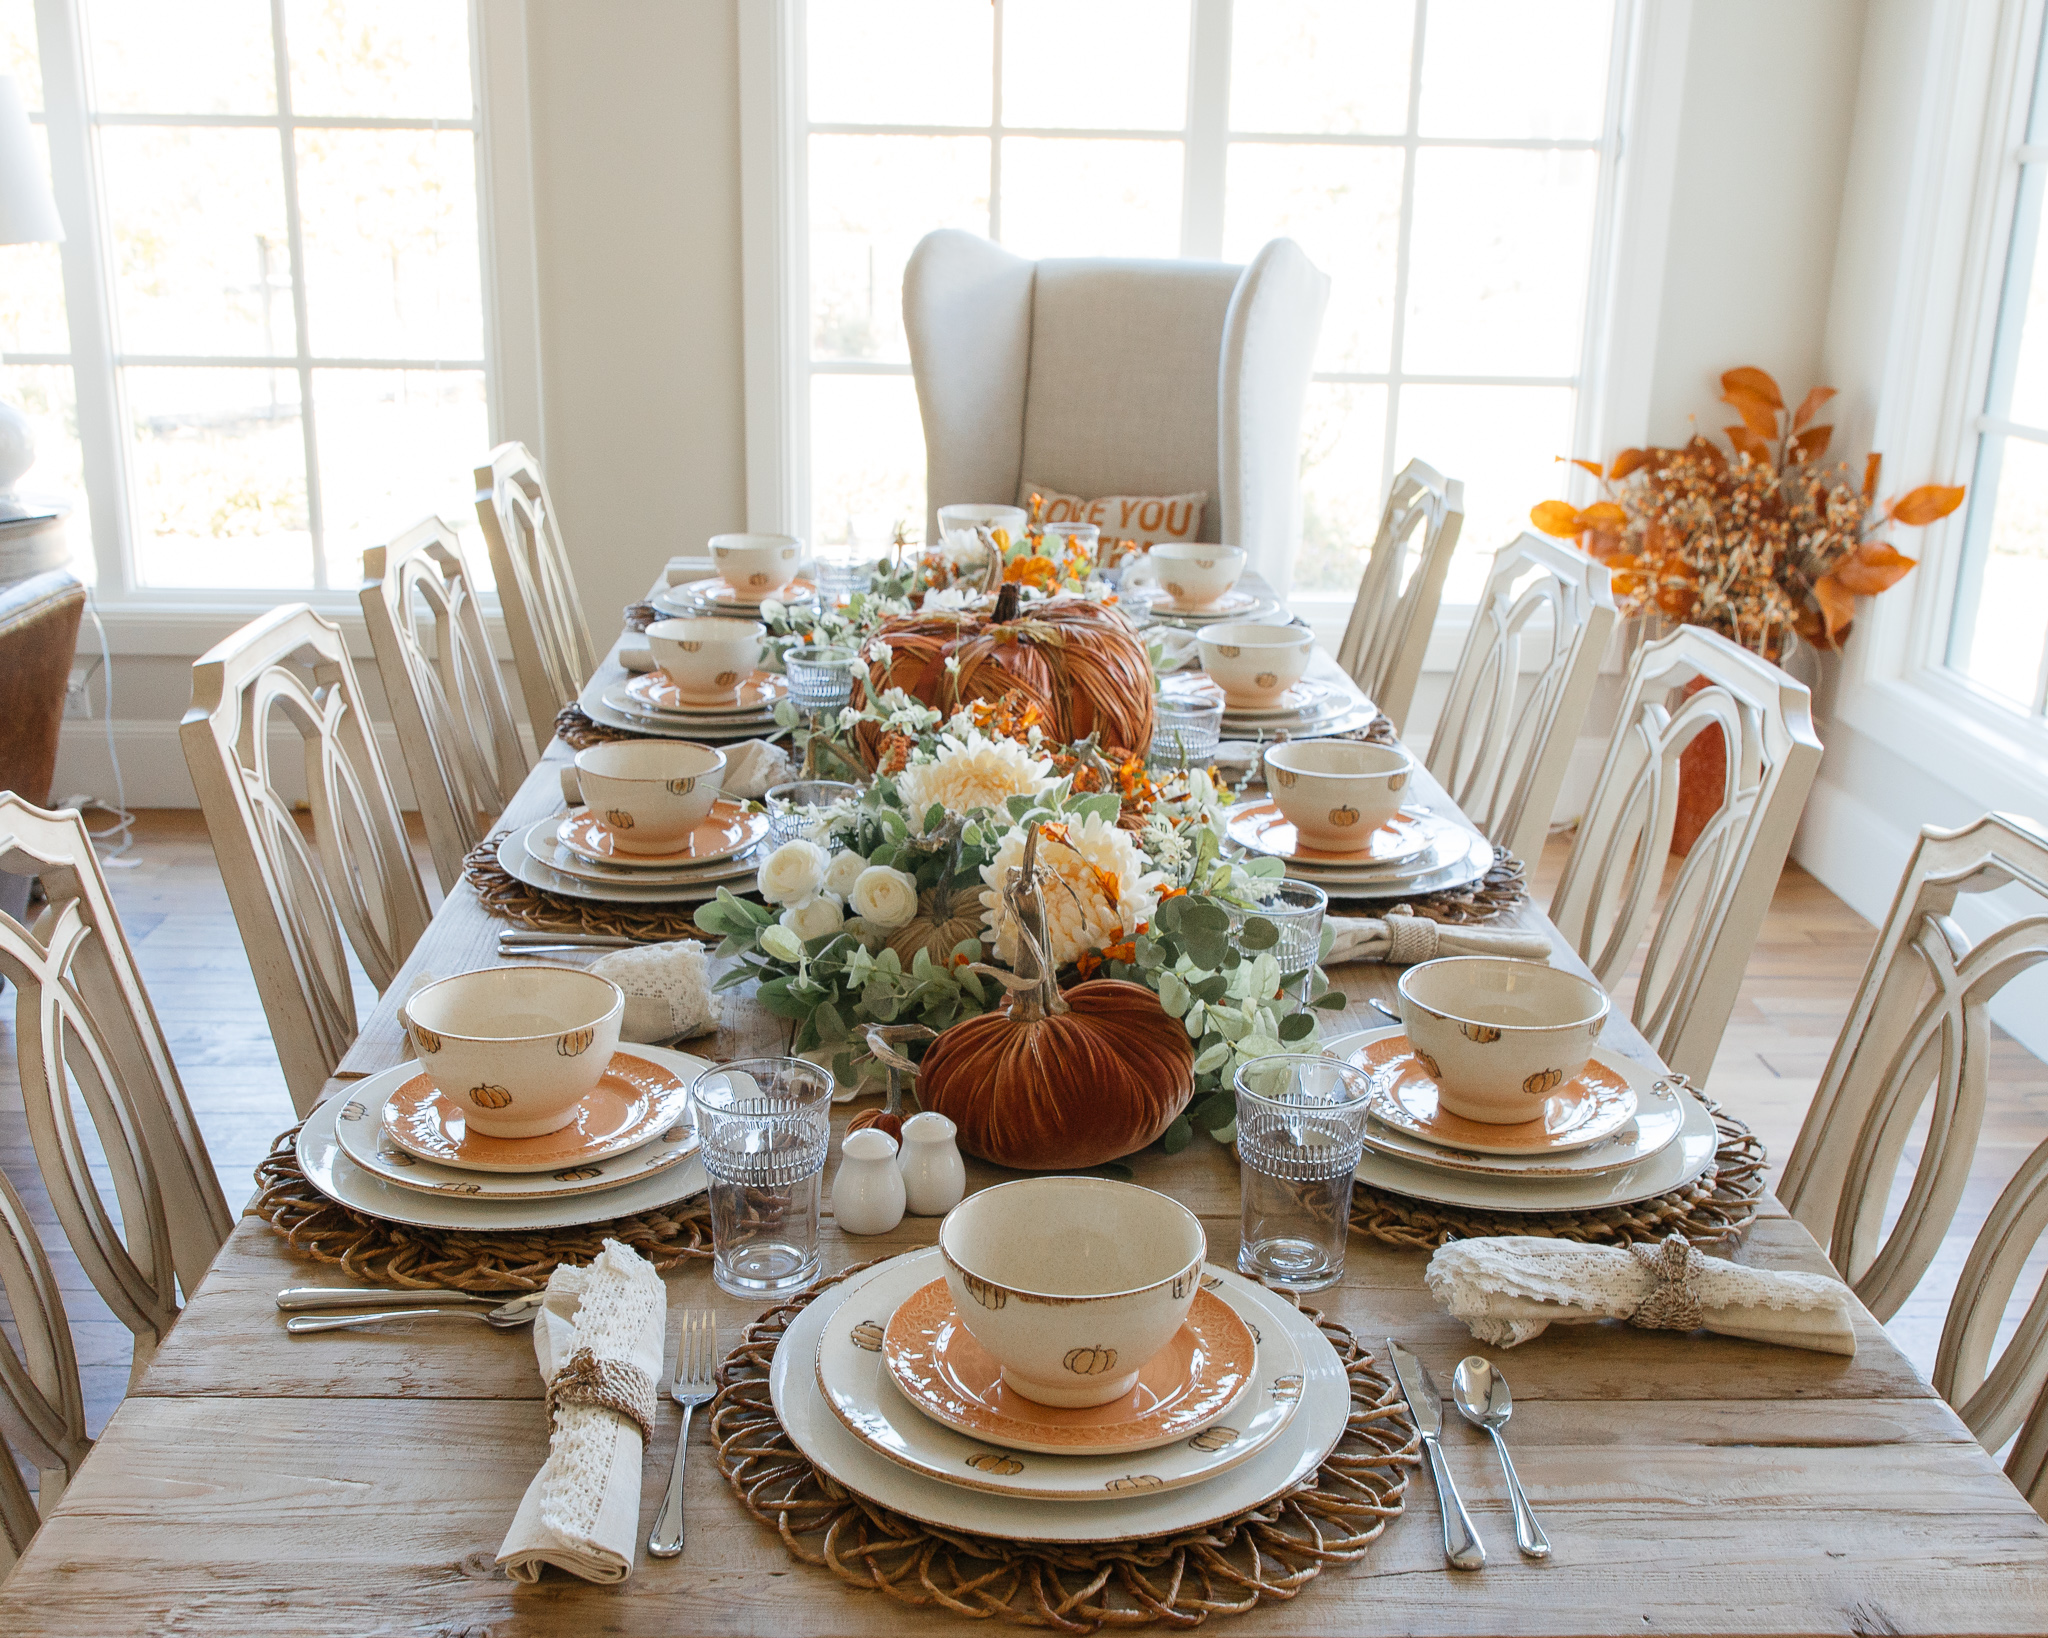 Holiday Hosting at Home #2: Fall Tablescapes and Home Decor